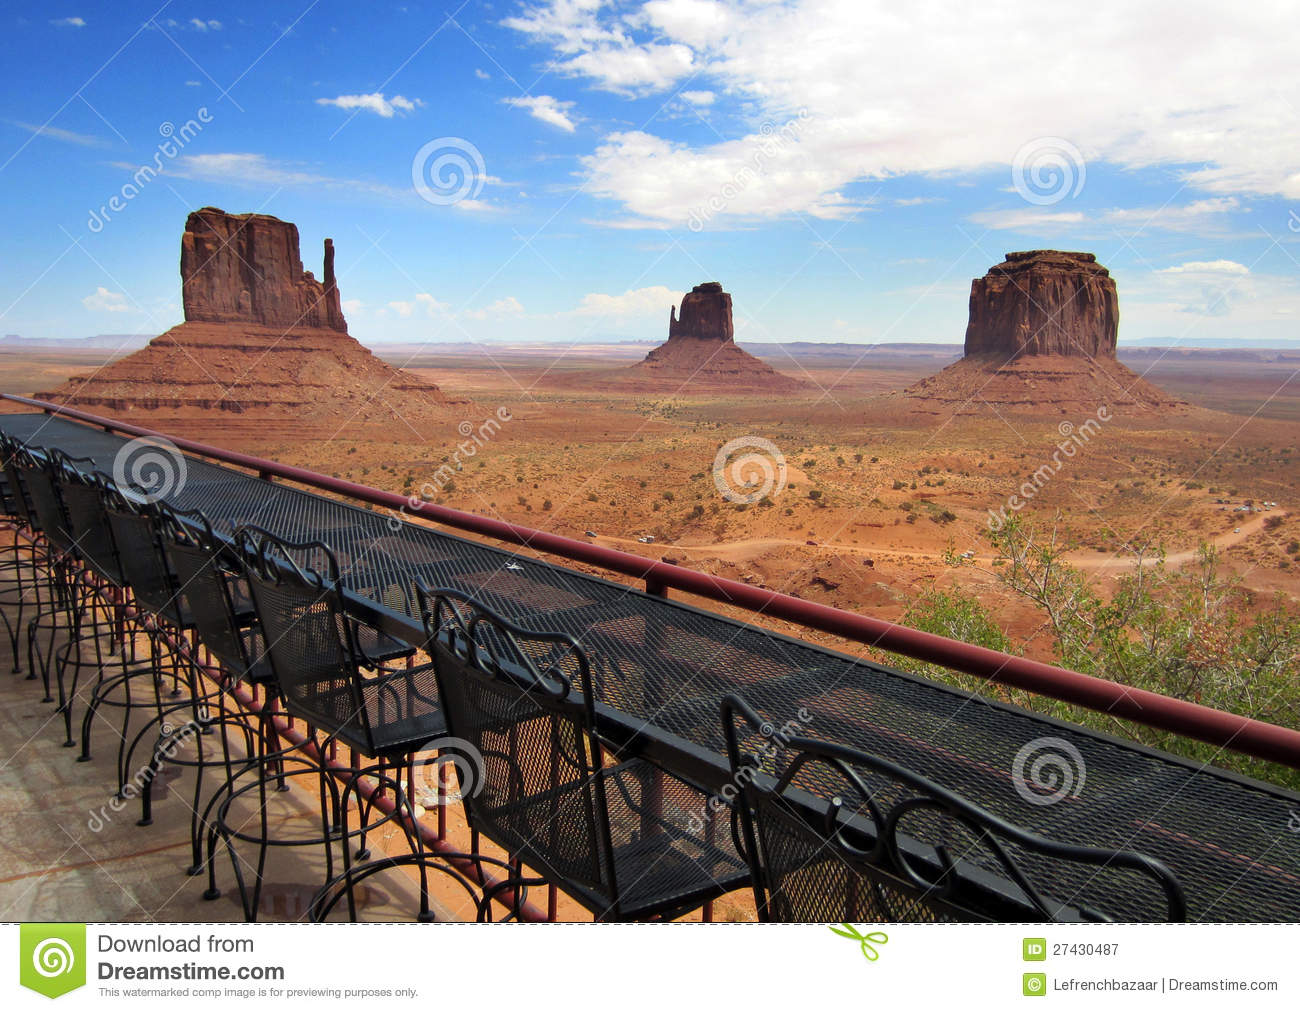 hindu single women in valley park Find american native silhouettes stock images in  silhouette of native indian american woman walking on  sunrise on us 163 scenic road to monument valley park .